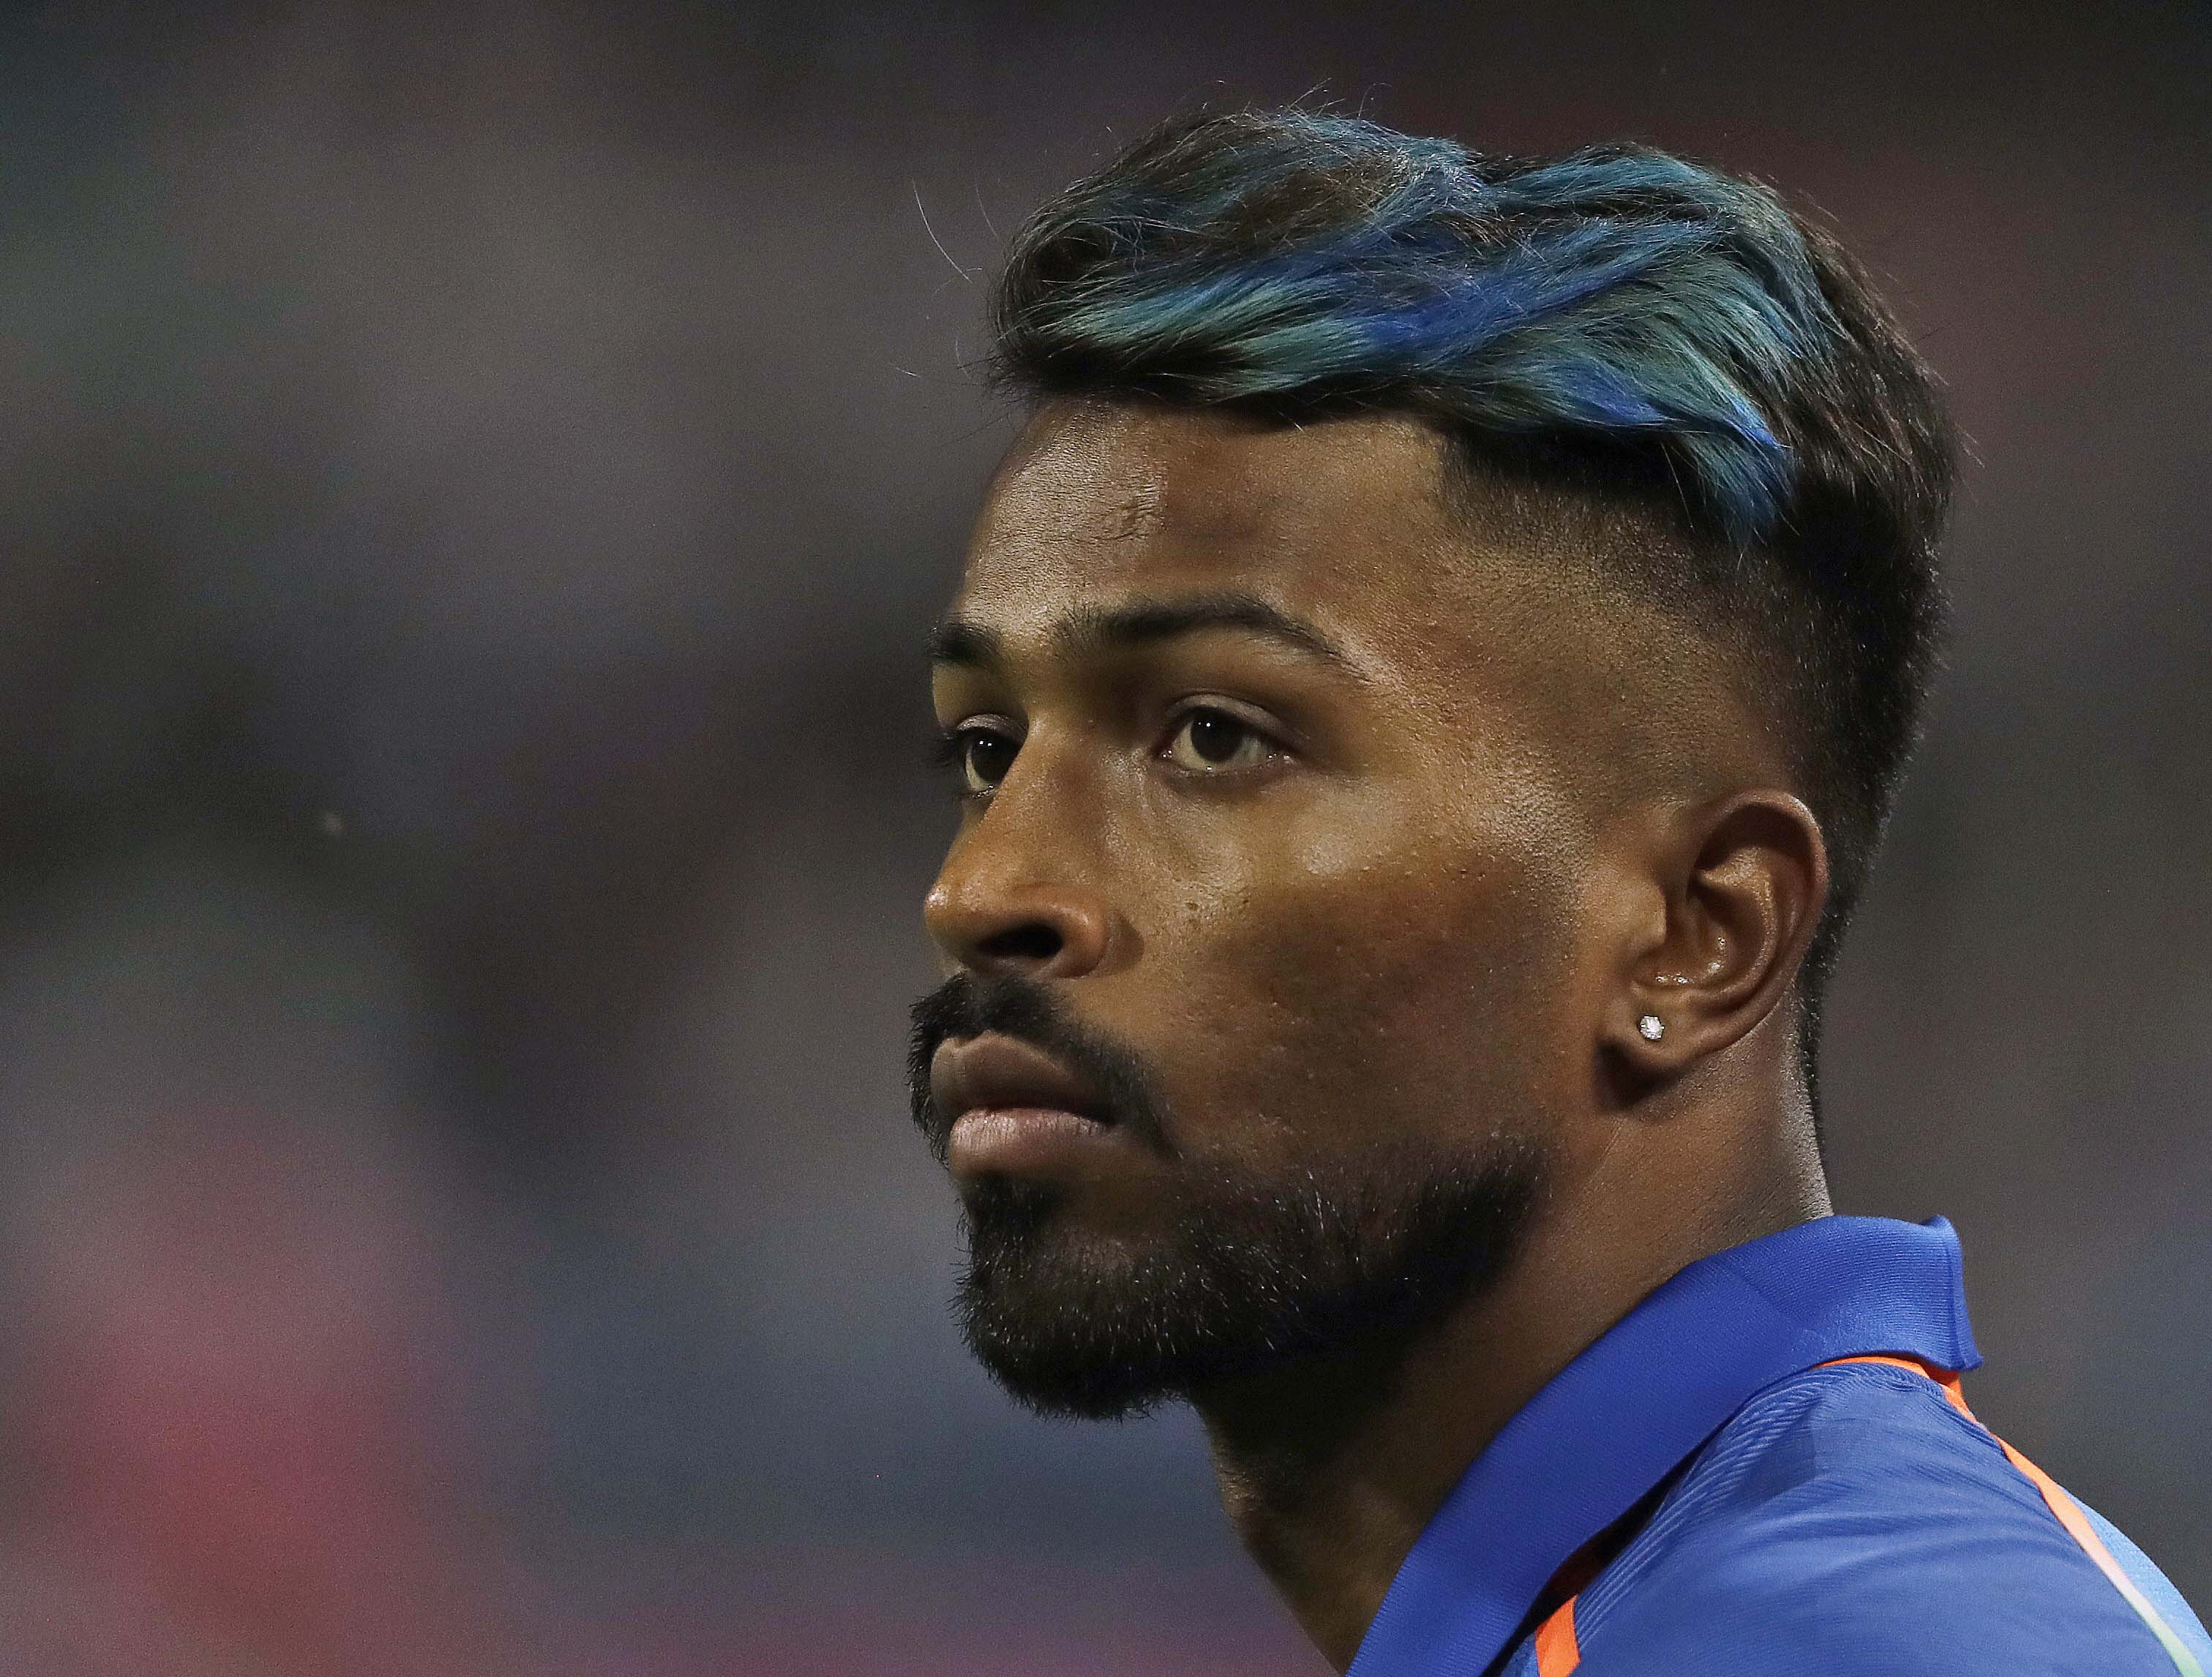 India Decides Are Hardik Pandya And Kl Rahul An Embarrassment To